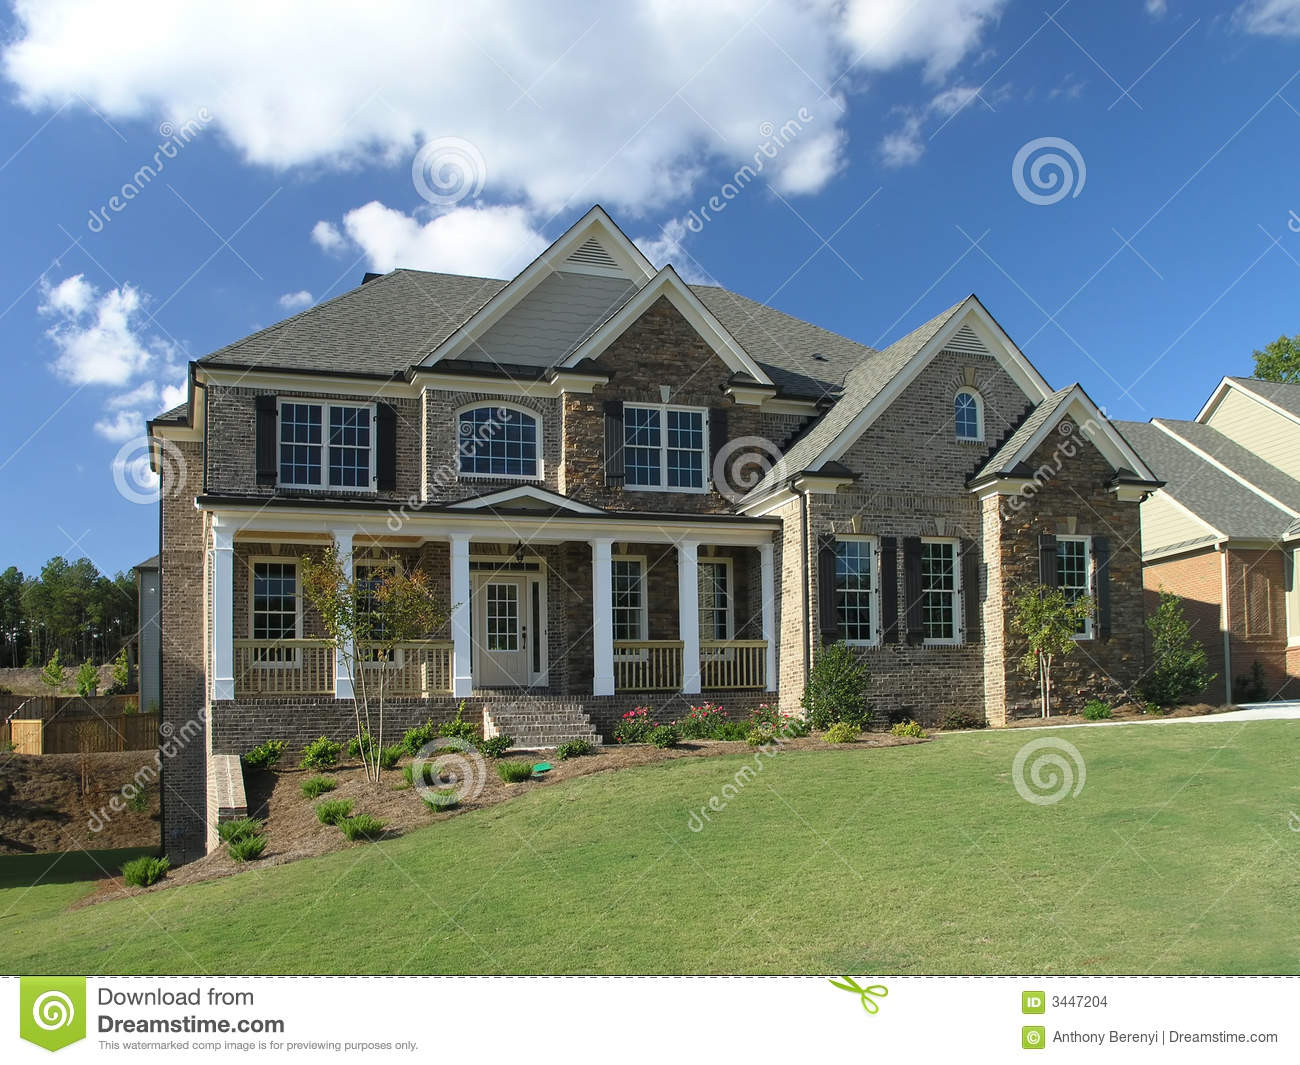 Luxury Home Exterior 50 Stock Images Image 3447204